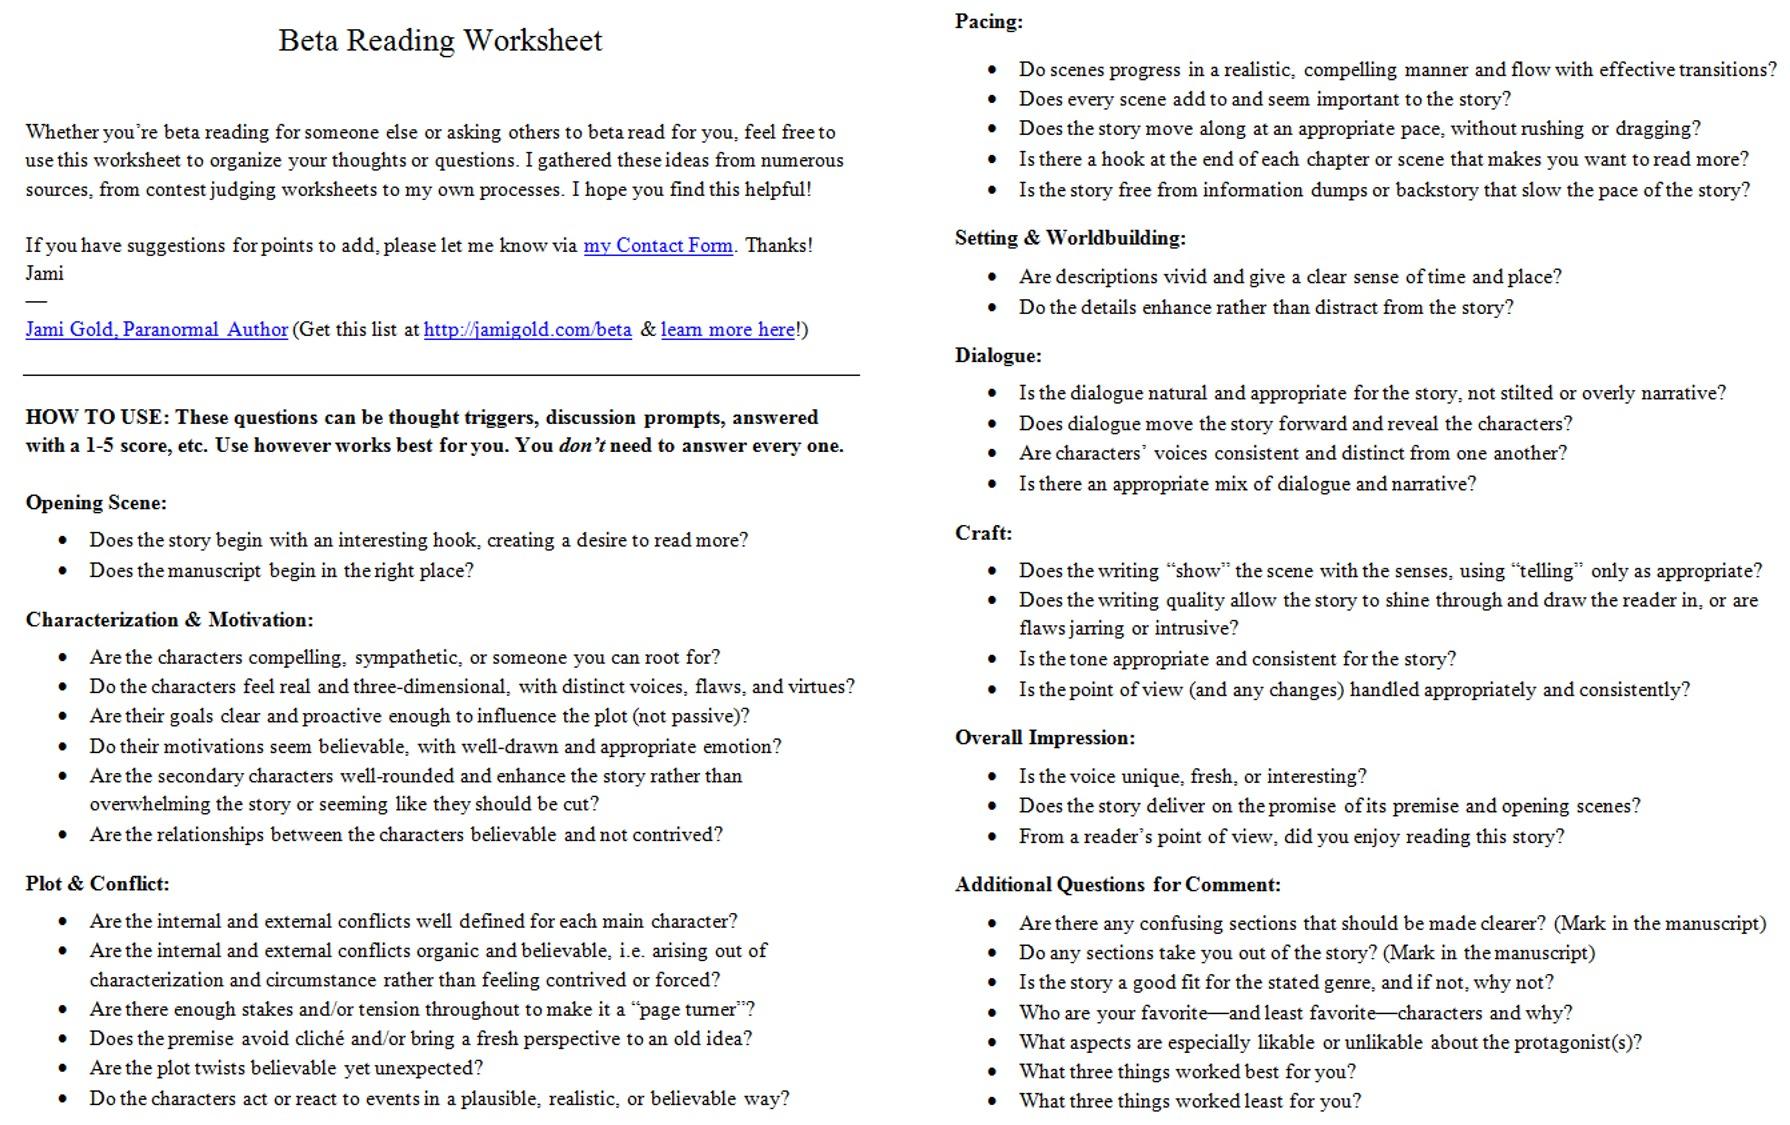 Weirdmailus  Mesmerizing Worksheets For Writers  Jami Gold Paranormal Author With Entrancing Screen Shot Of The Twopage Beta Reading Worksheet With Attractive Learning English For Beginners Worksheets Also Full Stops And Capital Letters Worksheet In Addition Worksheet On Nutrition And Maths Measurement Worksheets As Well As Phonic Worksheets Ks Additionally World Map Outline Worksheet From Jamigoldcom With Weirdmailus  Entrancing Worksheets For Writers  Jami Gold Paranormal Author With Attractive Screen Shot Of The Twopage Beta Reading Worksheet And Mesmerizing Learning English For Beginners Worksheets Also Full Stops And Capital Letters Worksheet In Addition Worksheet On Nutrition From Jamigoldcom